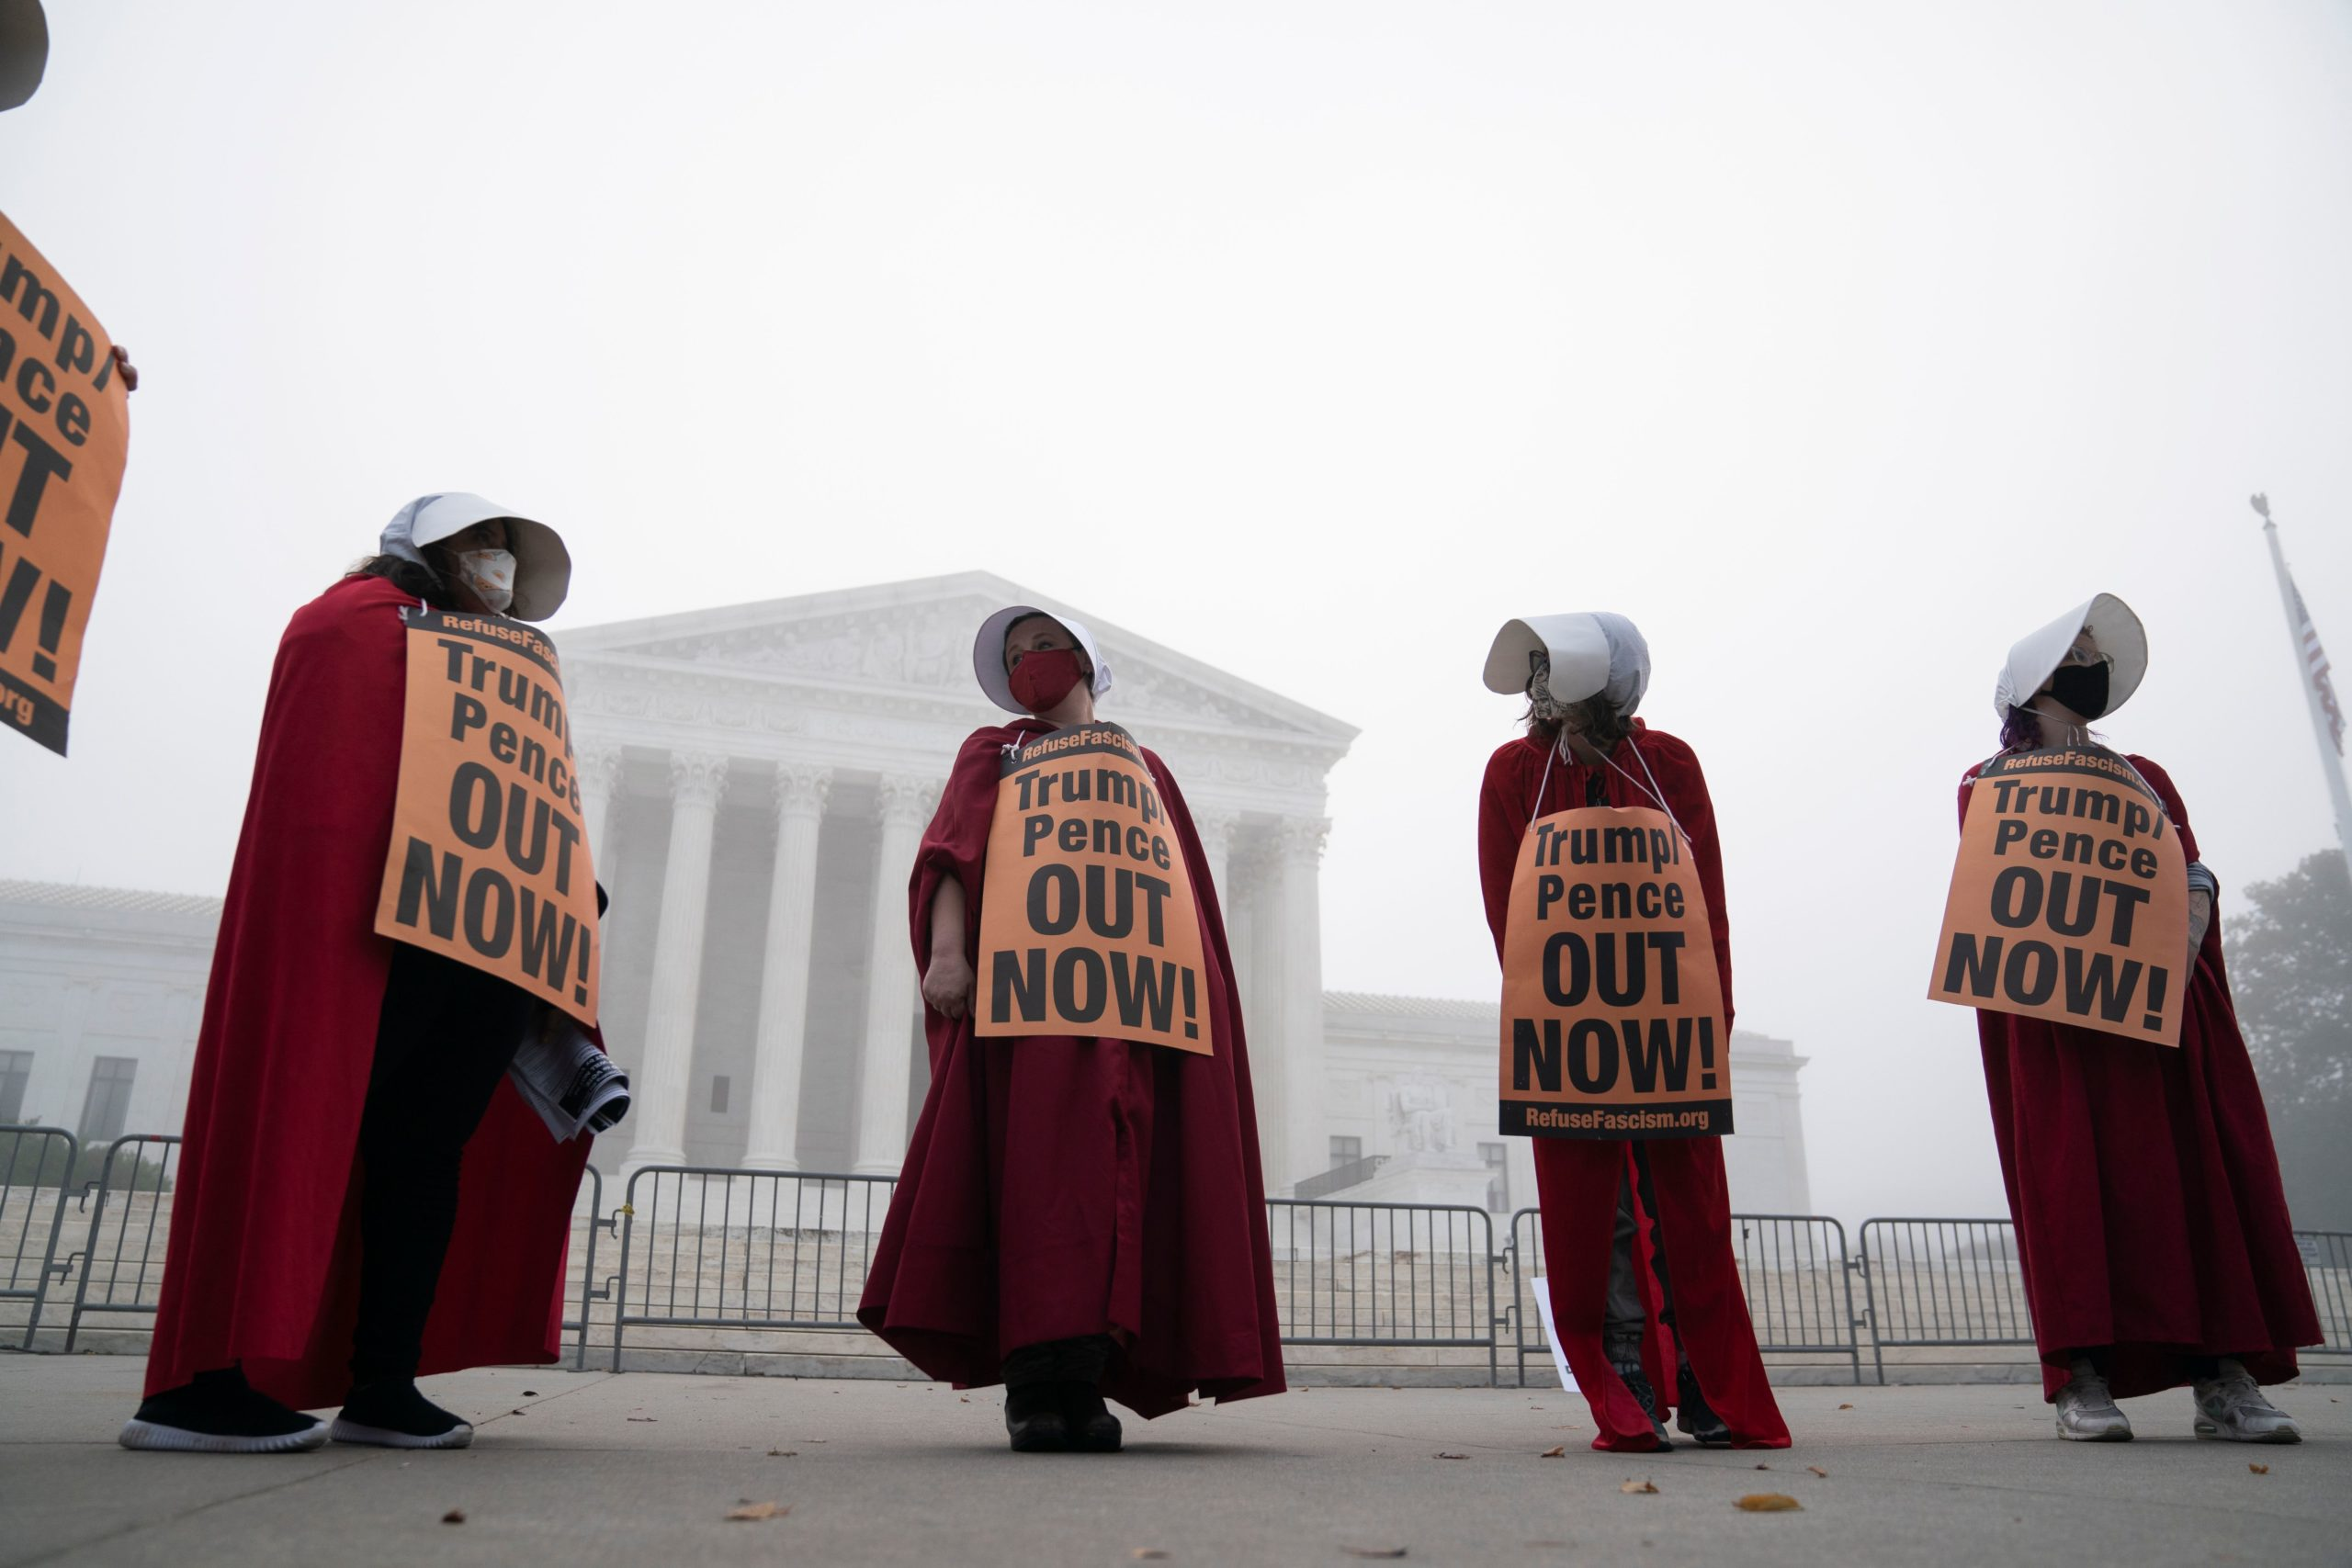 Demonstrators dressed as Handmaid's Tale protest the nomination of Amy Coney Barrett to be a US Supreme Court Justice at the US Supreme Court in Washington, DC, on October 22, 2020. - The Senate Judiciary Committee approved Barrett's nomination despite a boycott of the proceedings by Democratic committee members. (Photo by Alex Edelman / AFP) (Photo by ALEX EDELMAN/AFP via Getty Images)